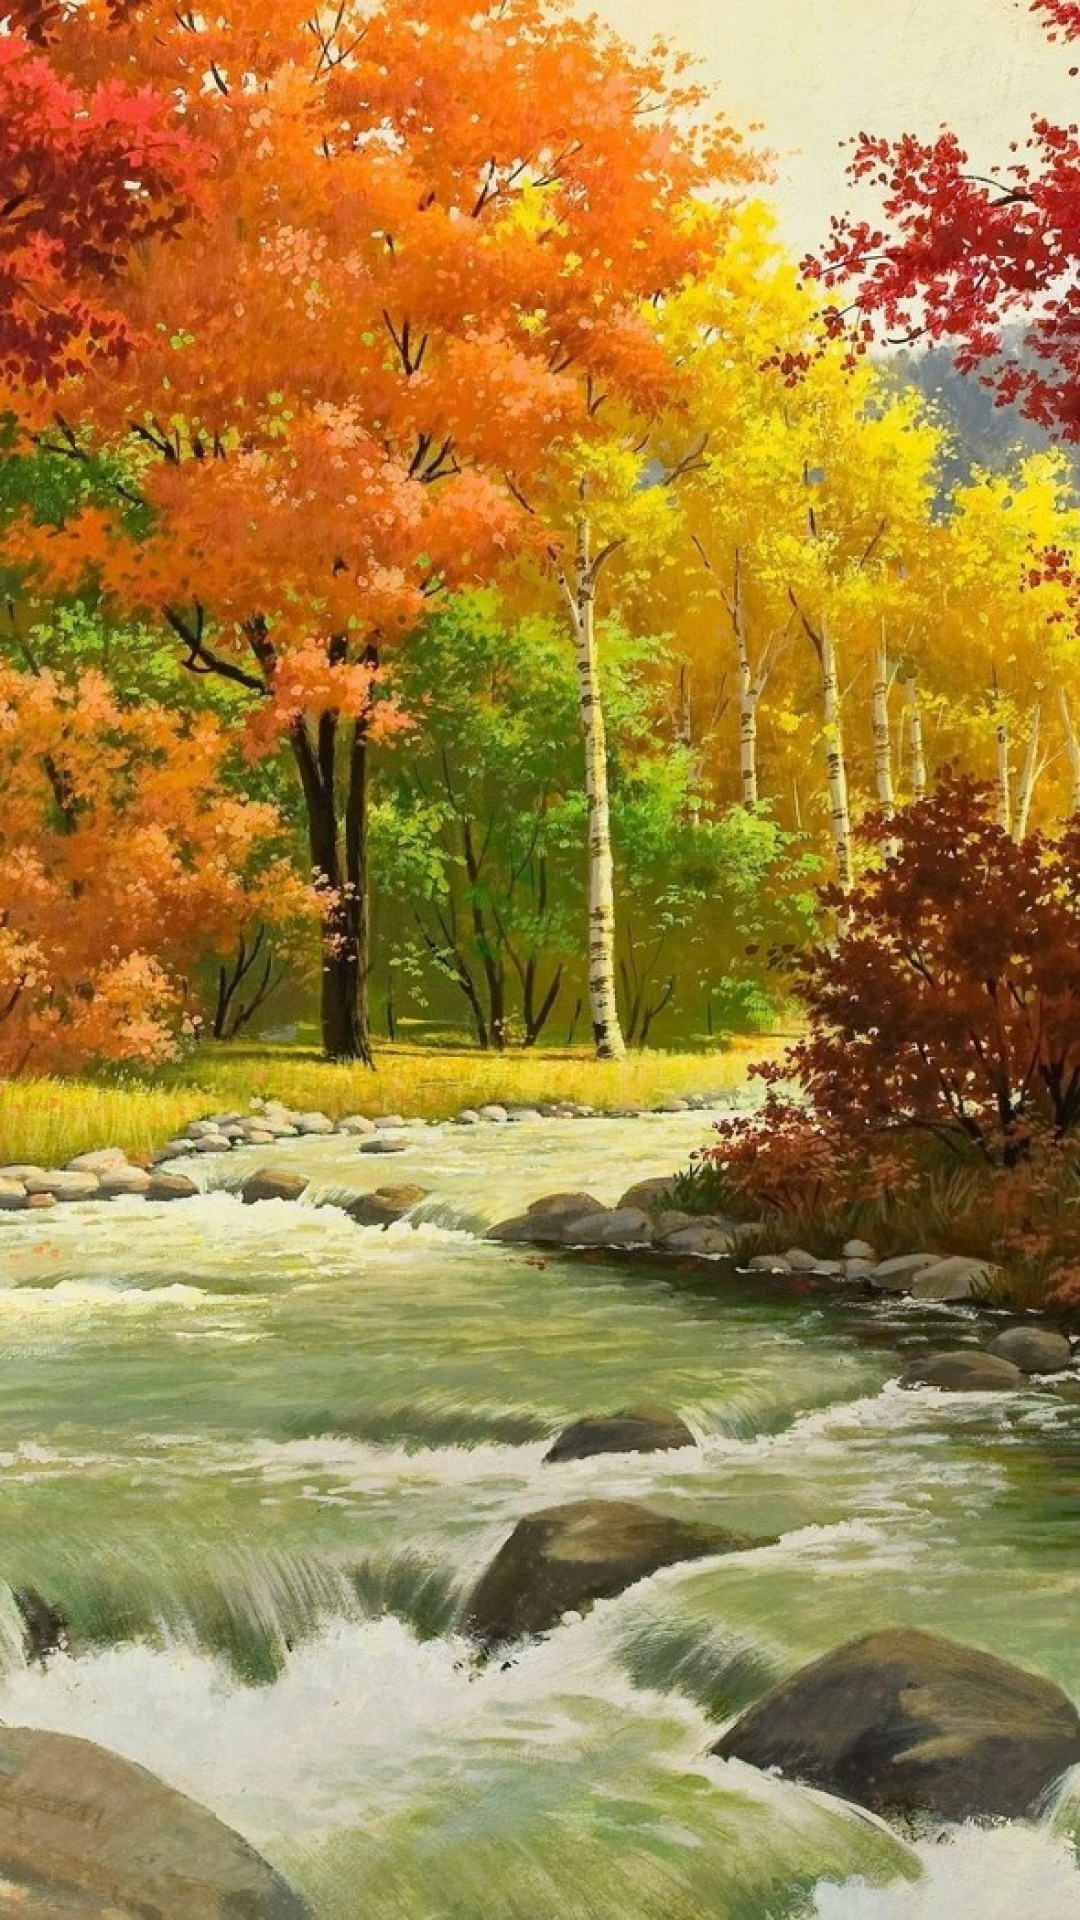 Download-1080x1920-Autumn-Landscape-Painting-River-Wood-Sony-Xperia-Z-ZL-Z-Samsung-wallpaper-wp360209